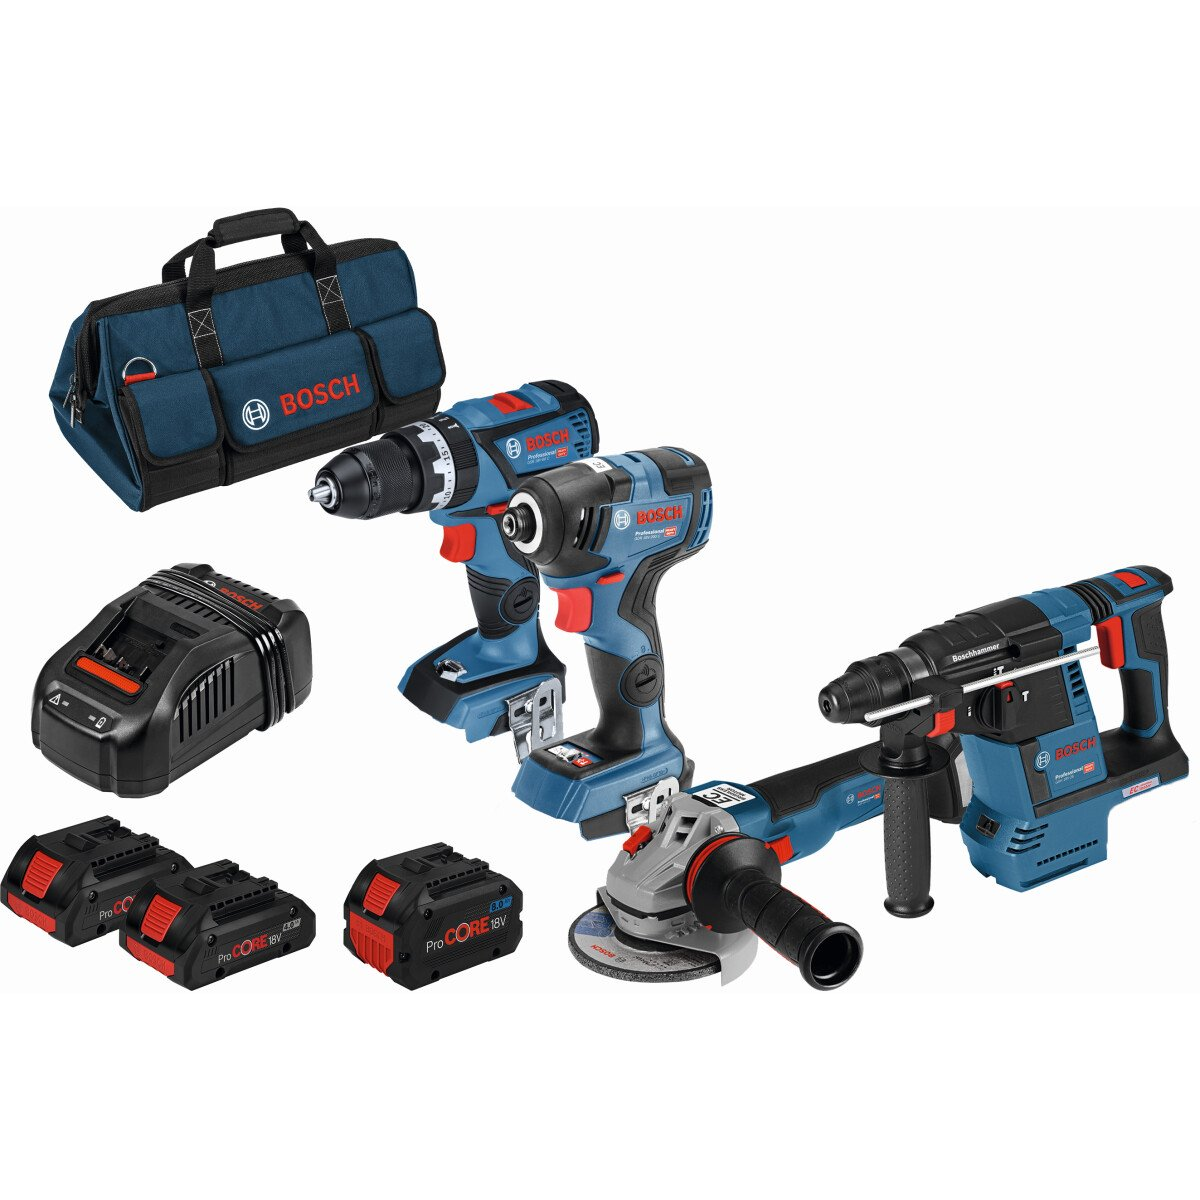 Bosch LBAG64 18v 4pc Kit (1 x 4.0 Ah ProCORE18V + 1x 8.0 Ah ProCORE18V Battery) in Bag